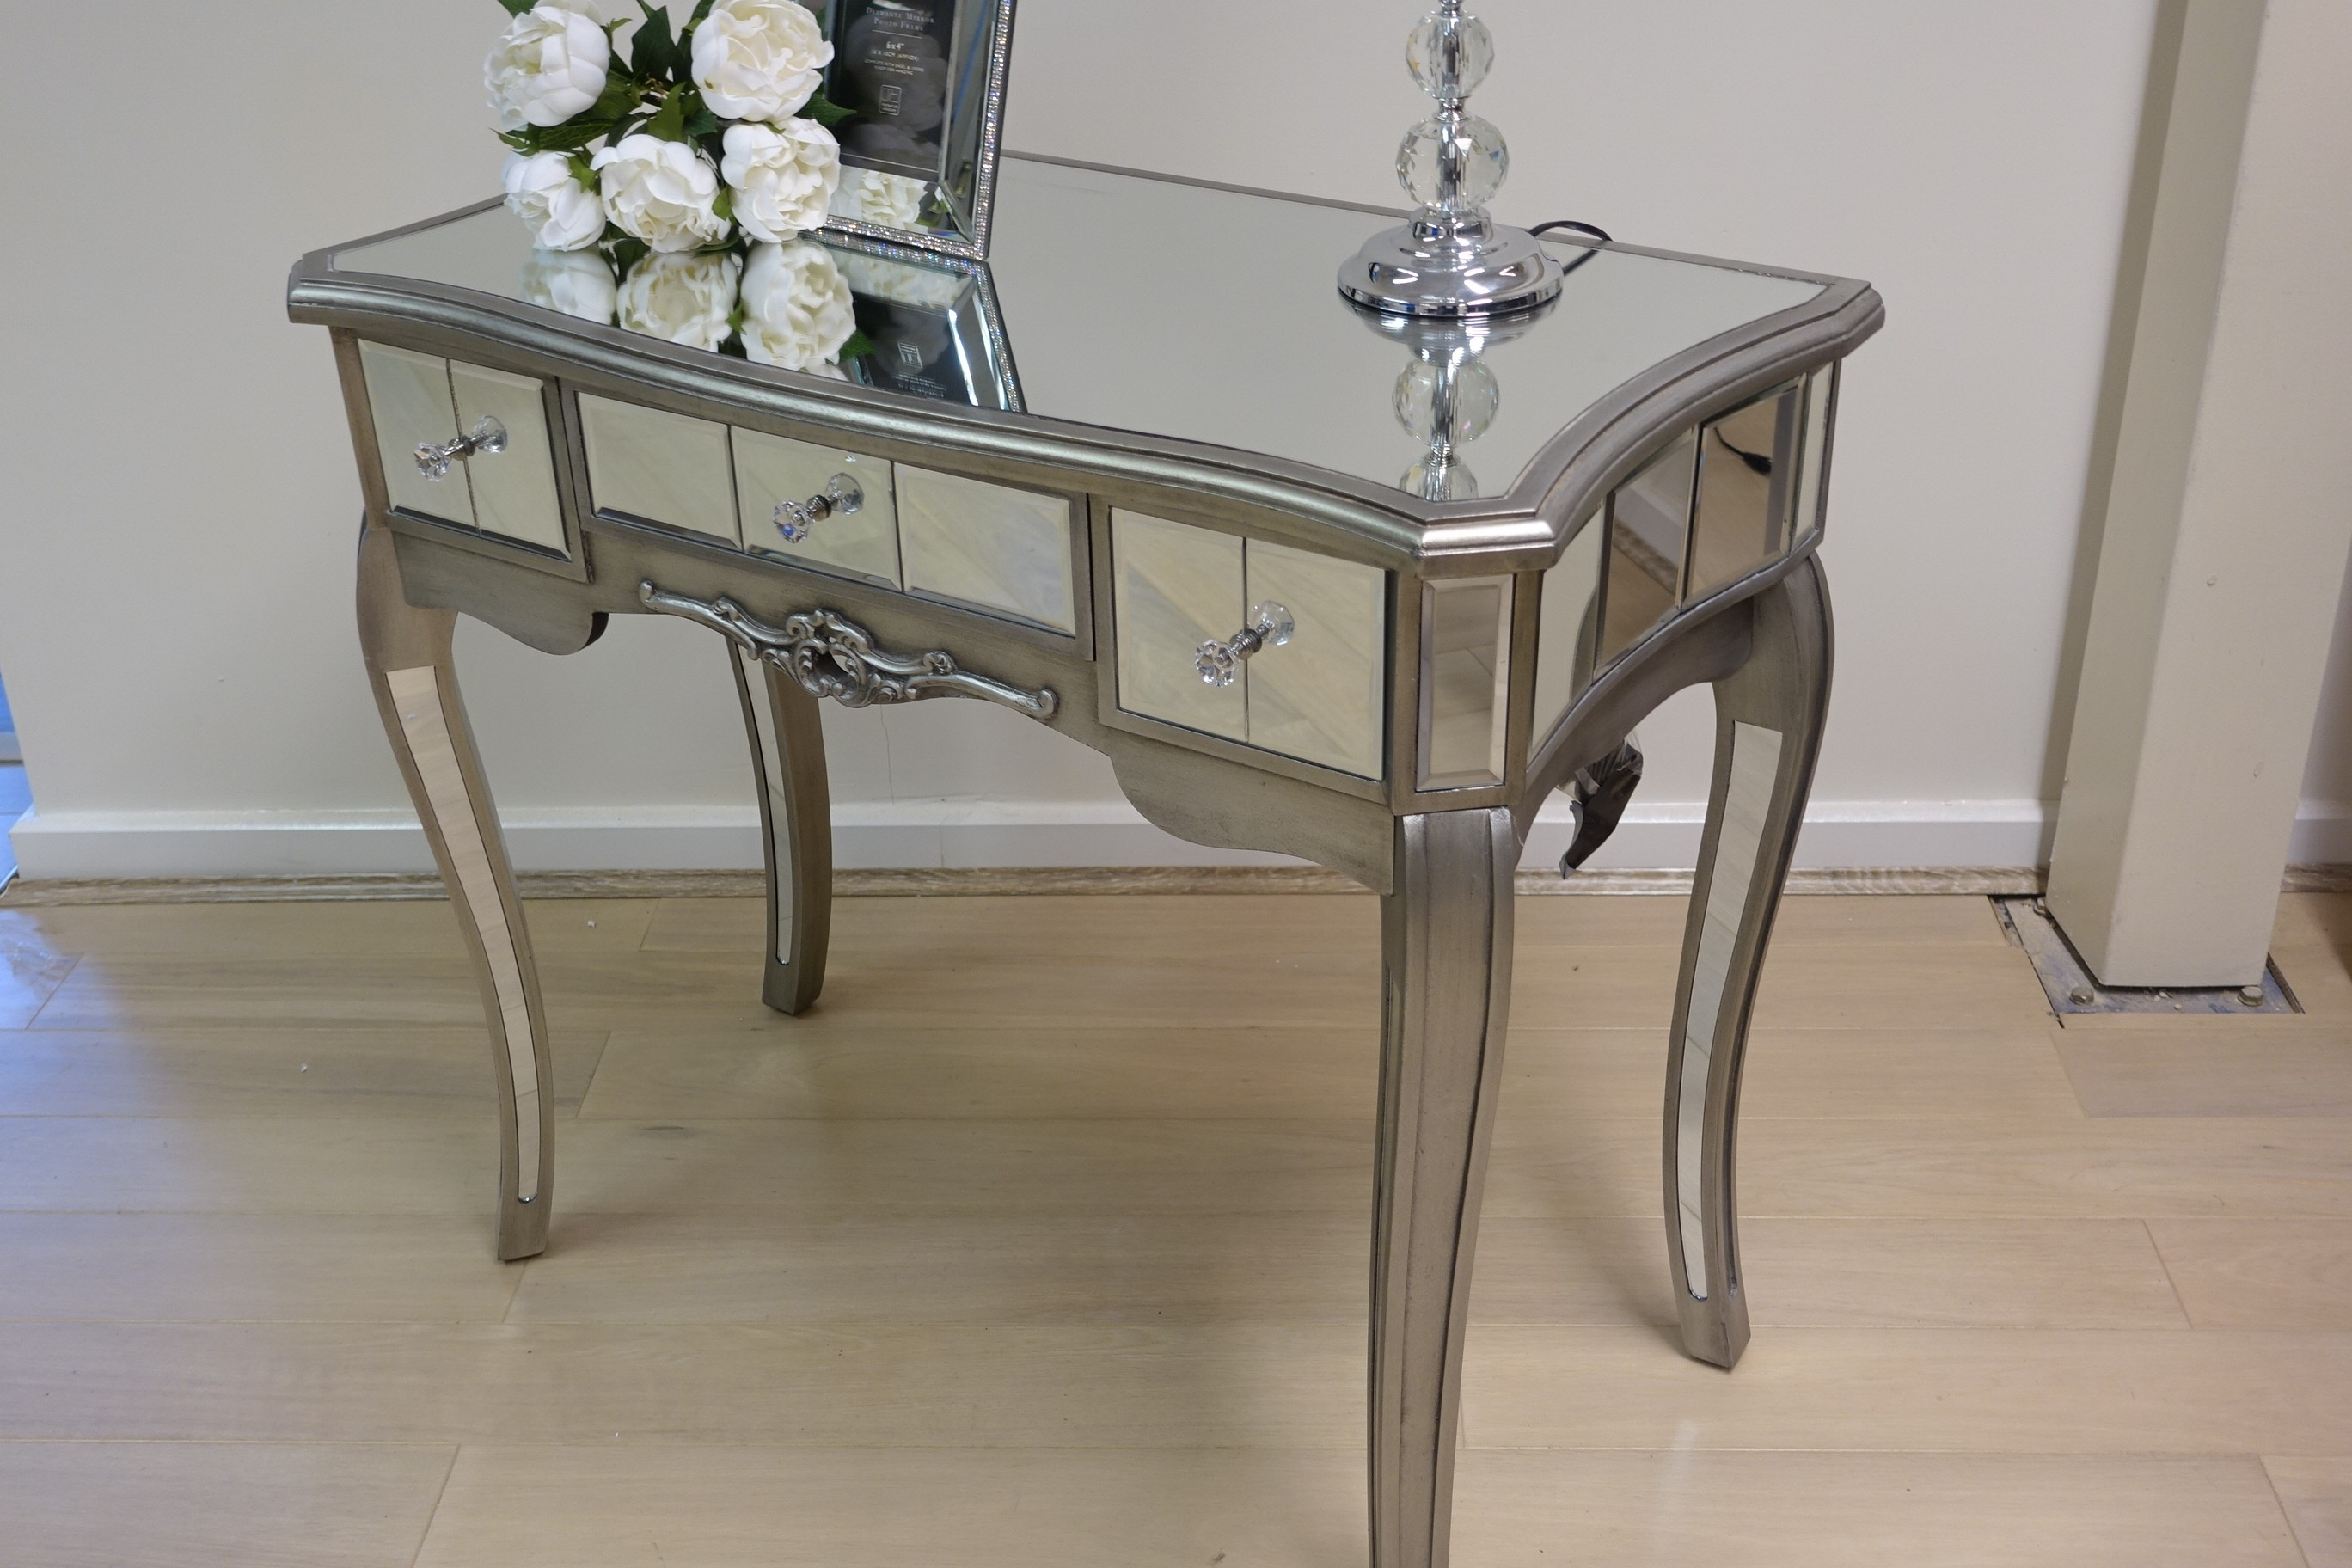 powell cheap clairmonte overstock nightstand home nightstands mirror goods for cupboard mirrored target decor mir inexpensive your wood antique marvelous furniture pier one decorating